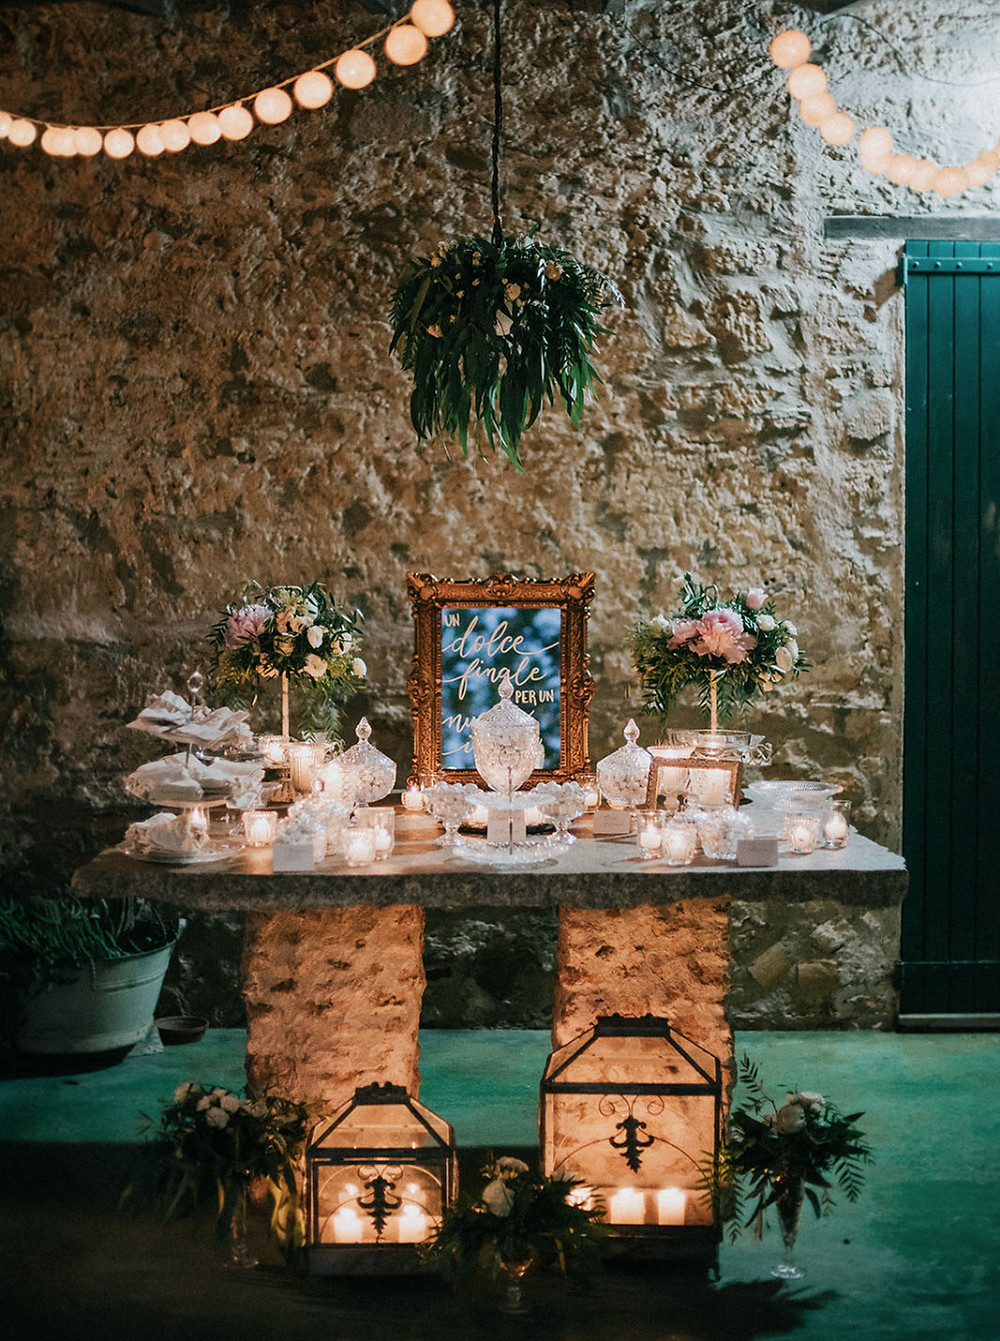 Paolo Salvadori Sardinia Destination Wedding Photographer Sara Events Exclusive and Luxury Wedding Planner